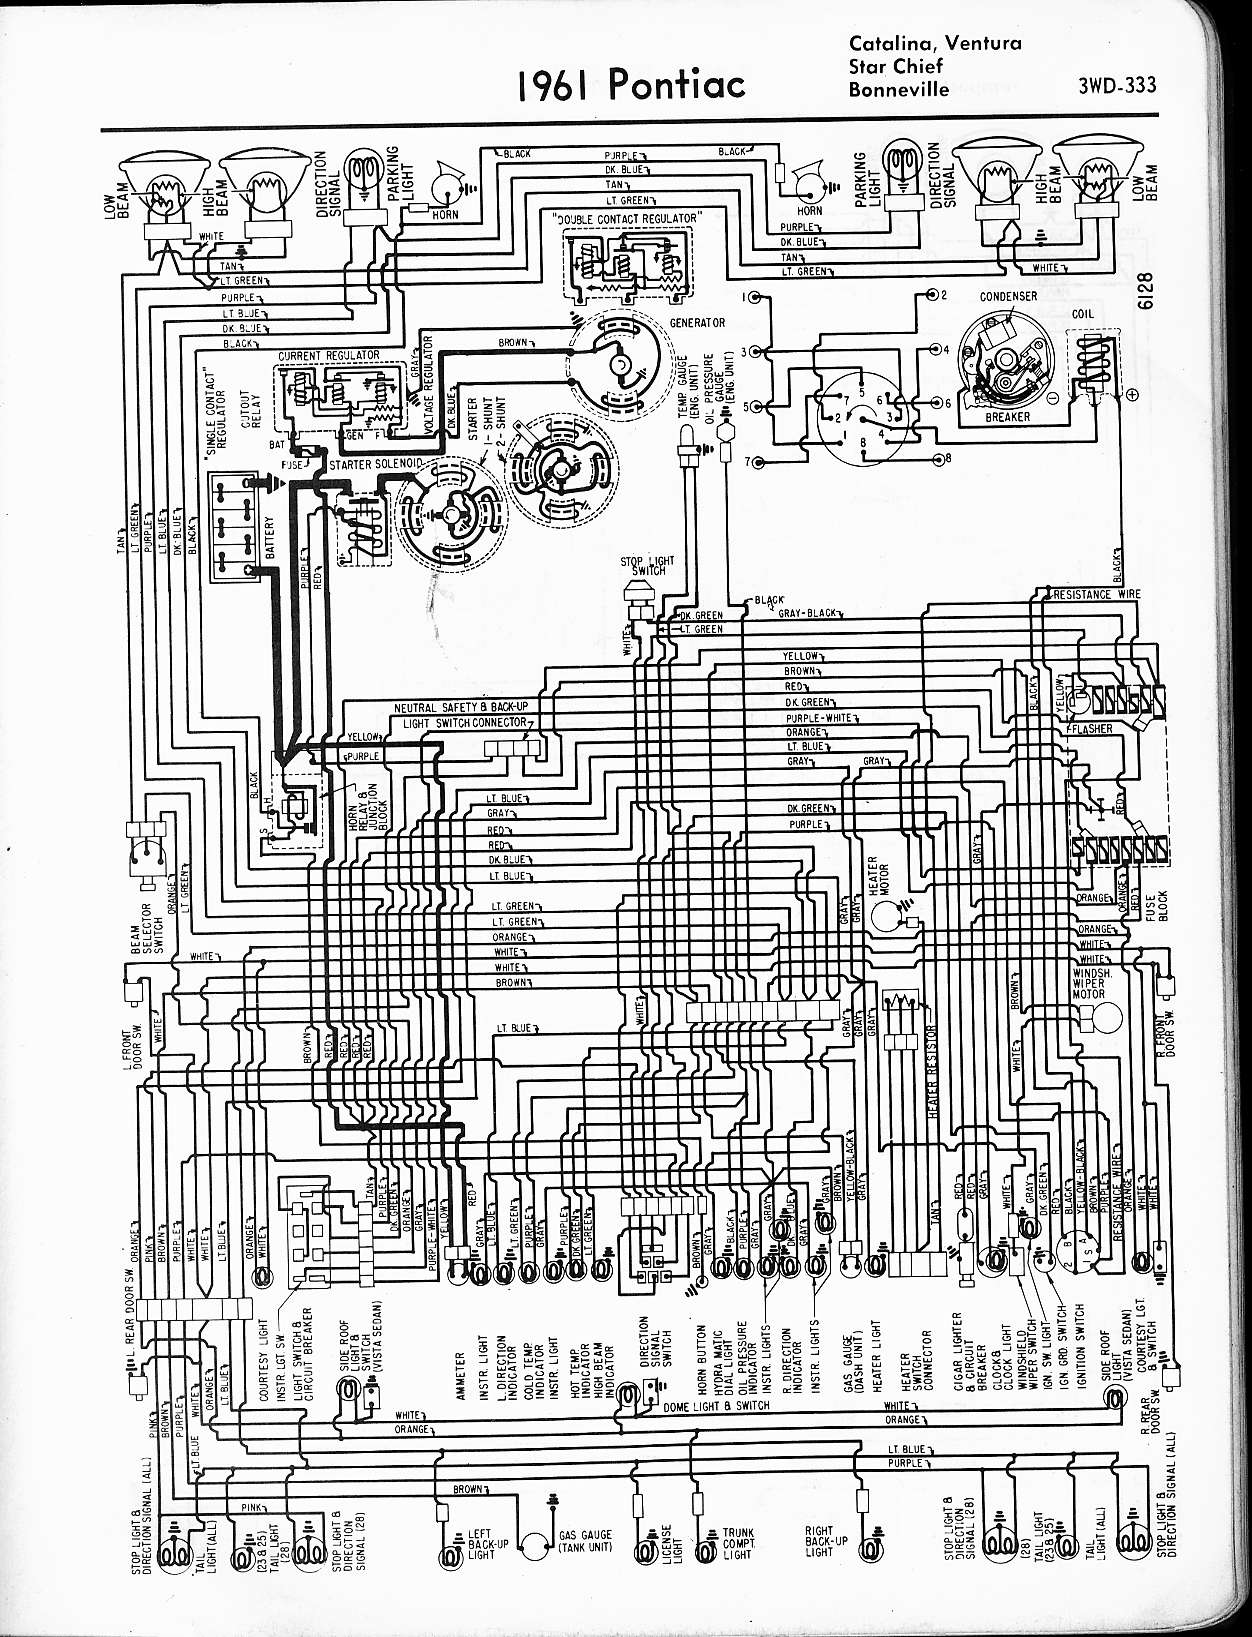 Pontiac G6 Radio Fuse Box Wiring Library Car Stereo To Wallace Racing Diagrams Rh Wallaceracing Com Diagram 1968